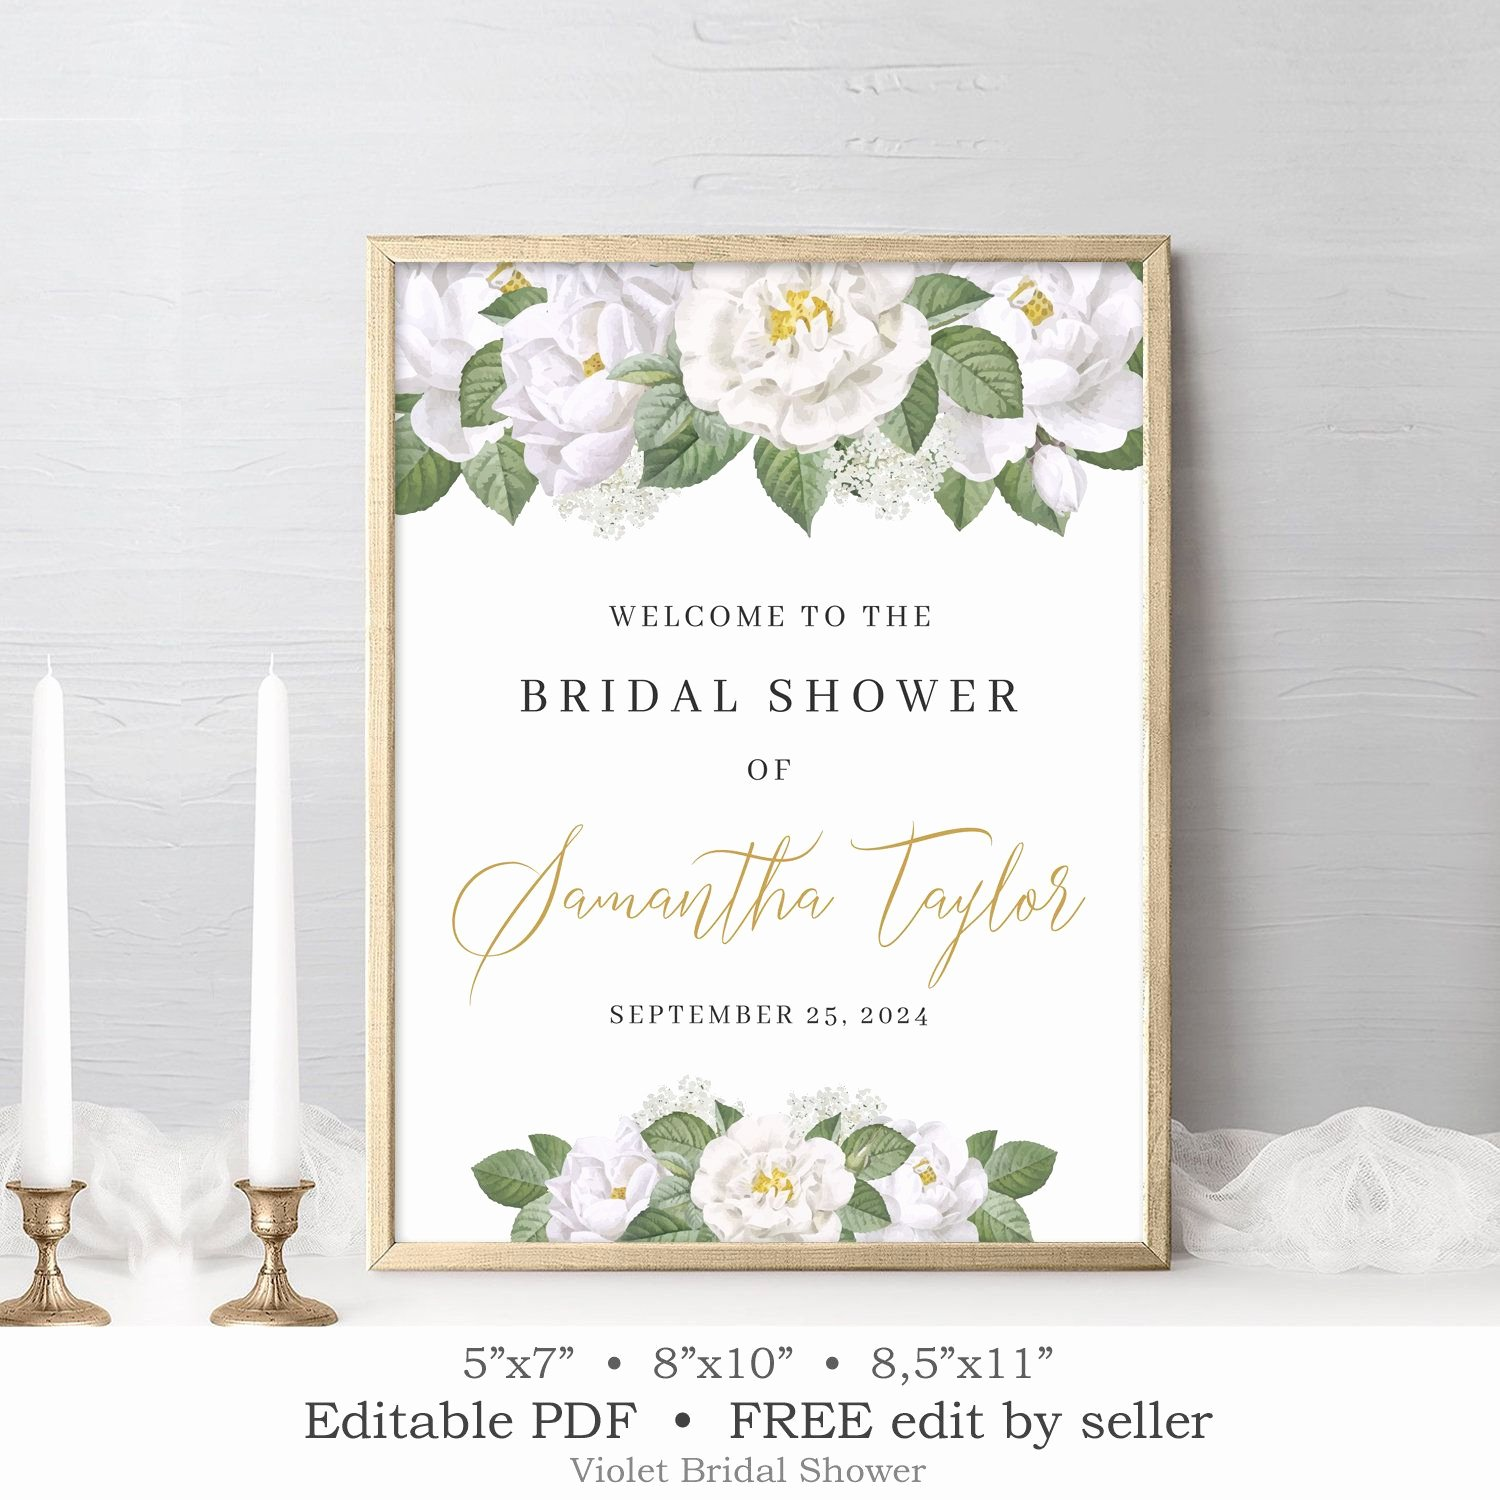 Bridal Shower Welcome Sign Template New Greenery Wel E Sign Printable Editable Brdial Shower